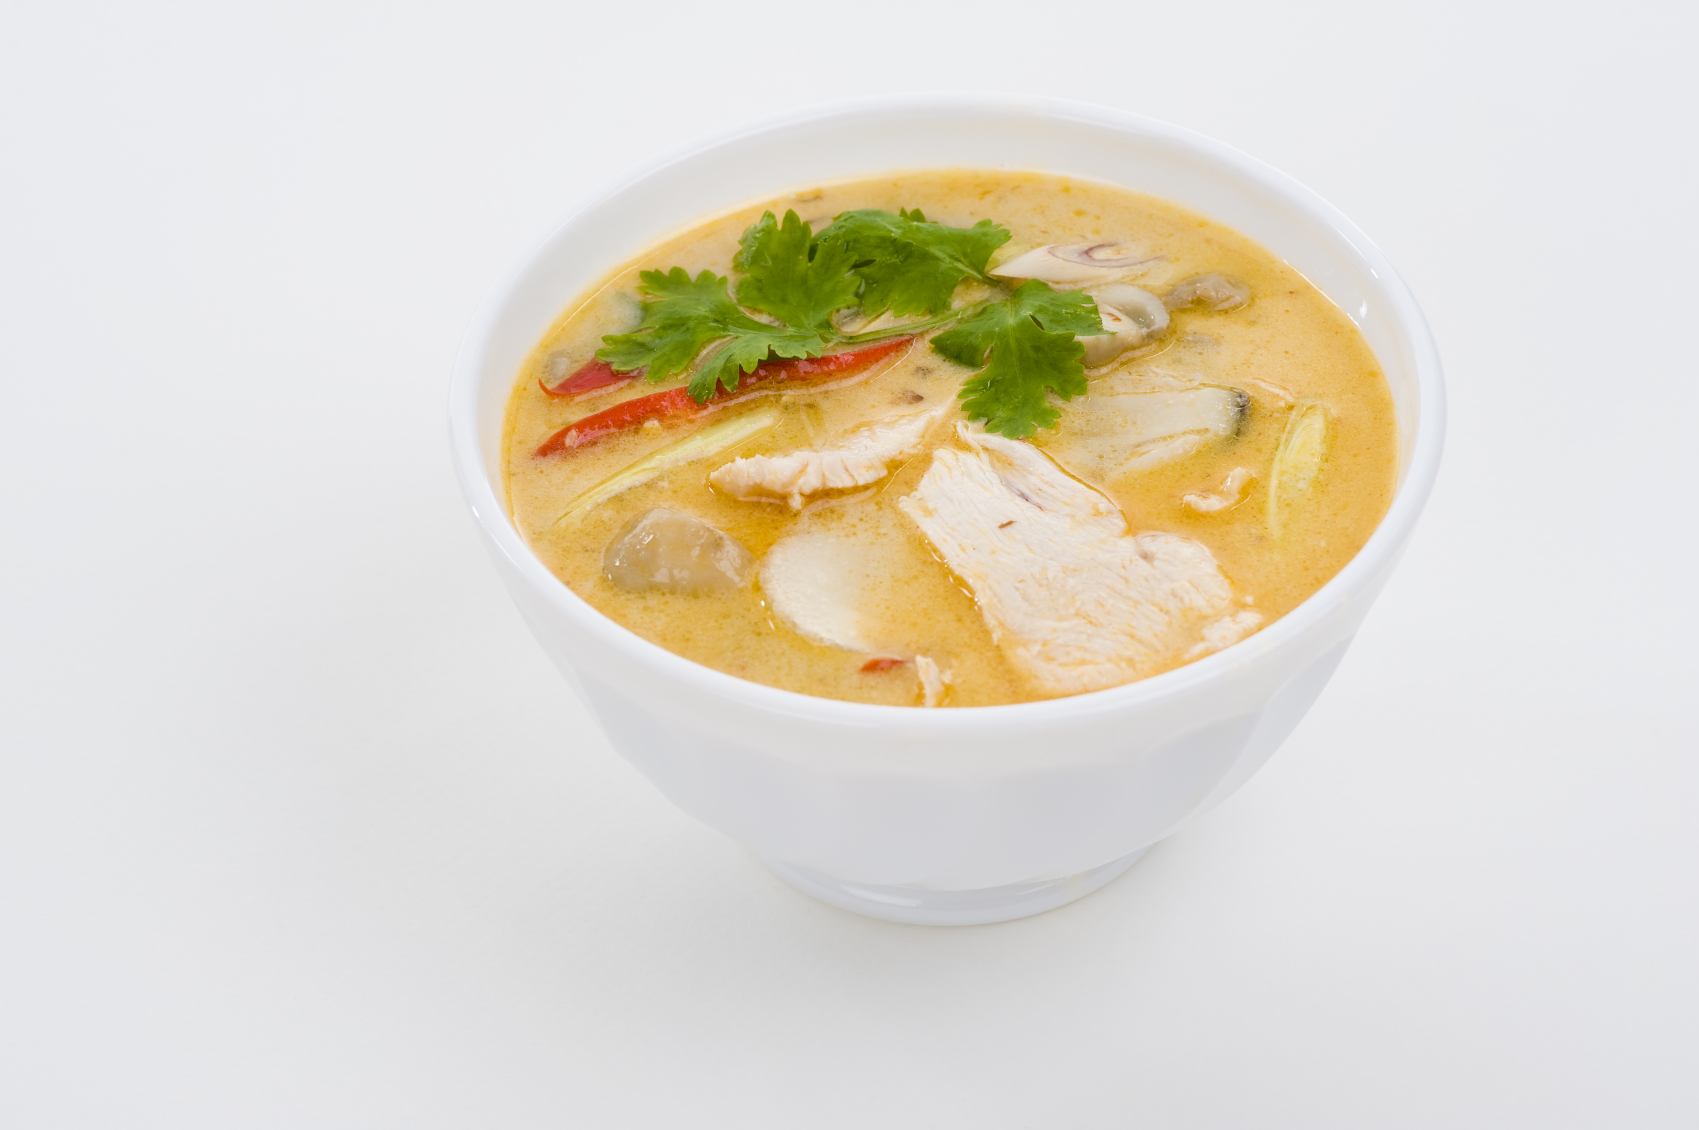 Soup Recipes In Urdu With Chicken With Pictures For Kids Image With